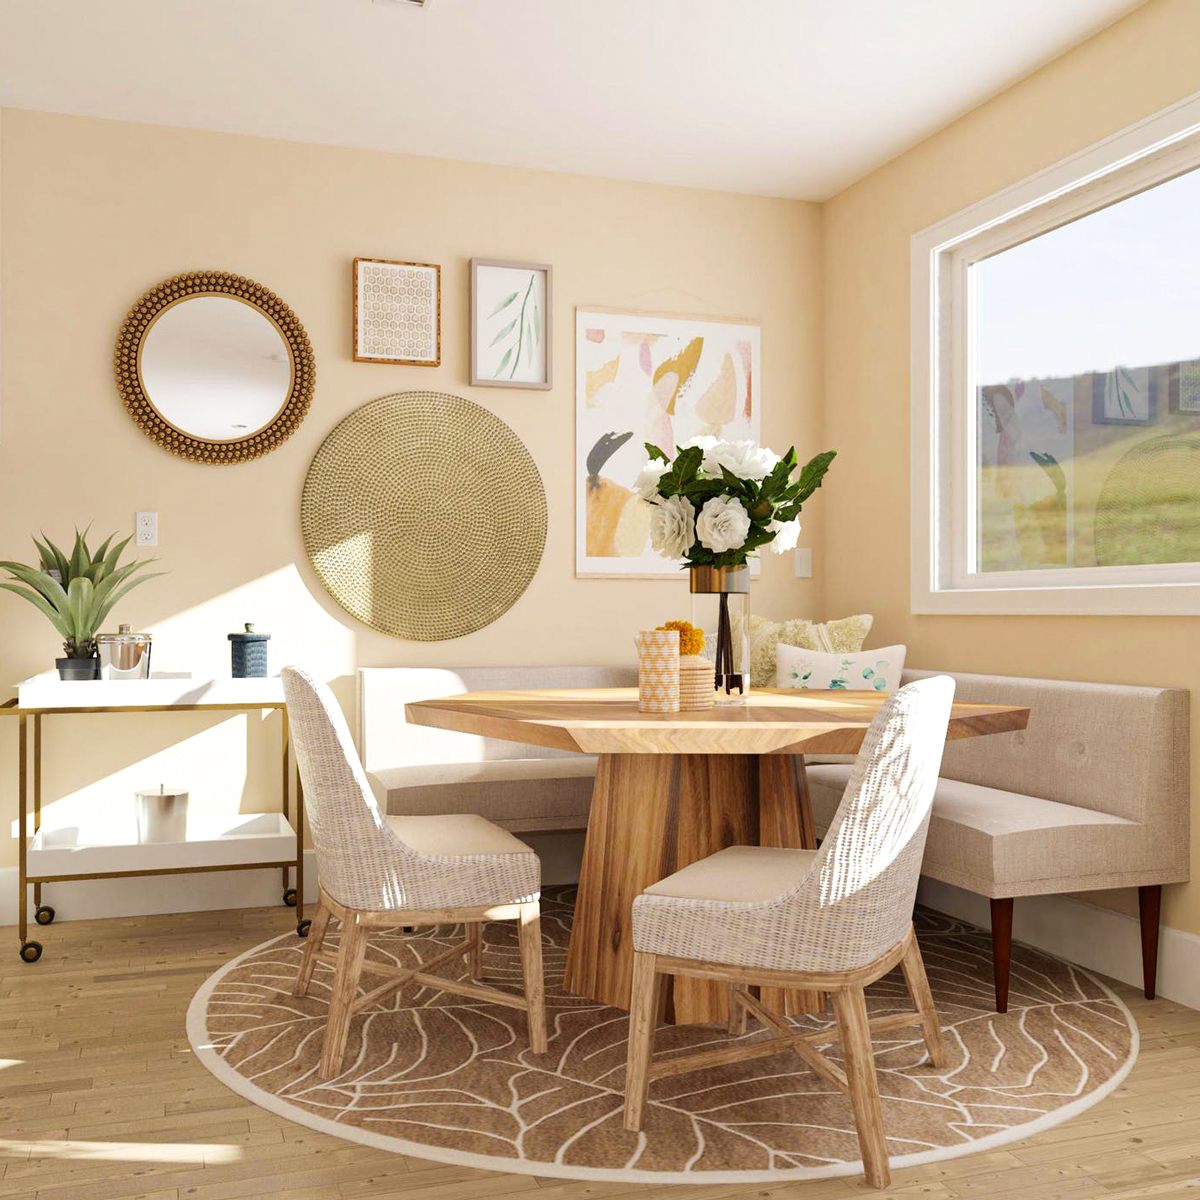 10 Dining Room Layout Ideas For Rooms Of All Shapes And Sizes